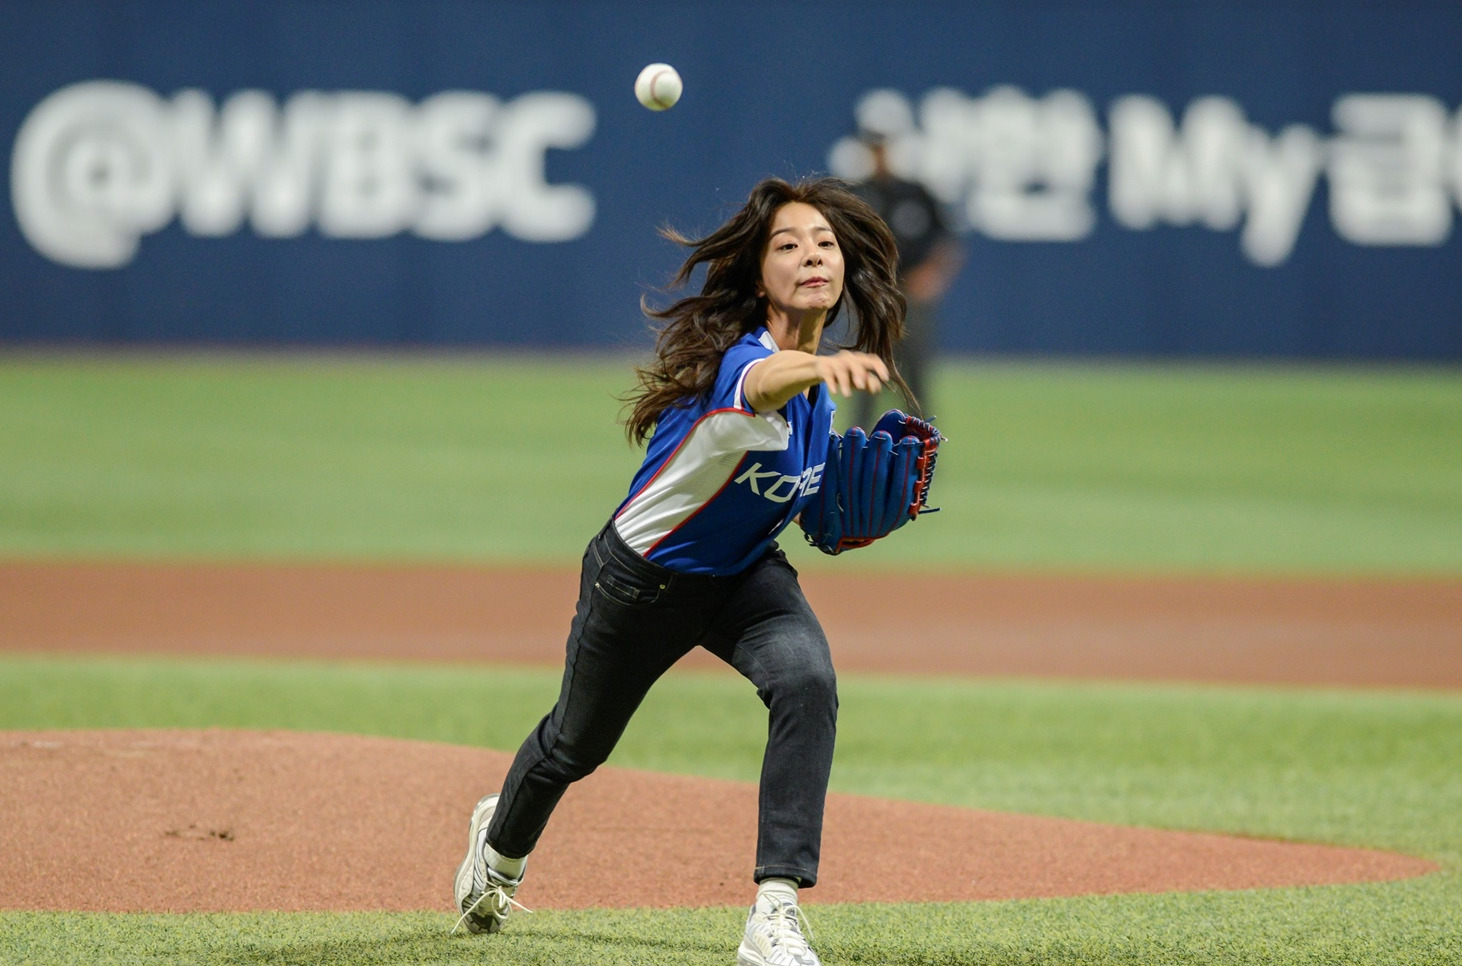 Actress Seol In-ah during the first pitch ceremony